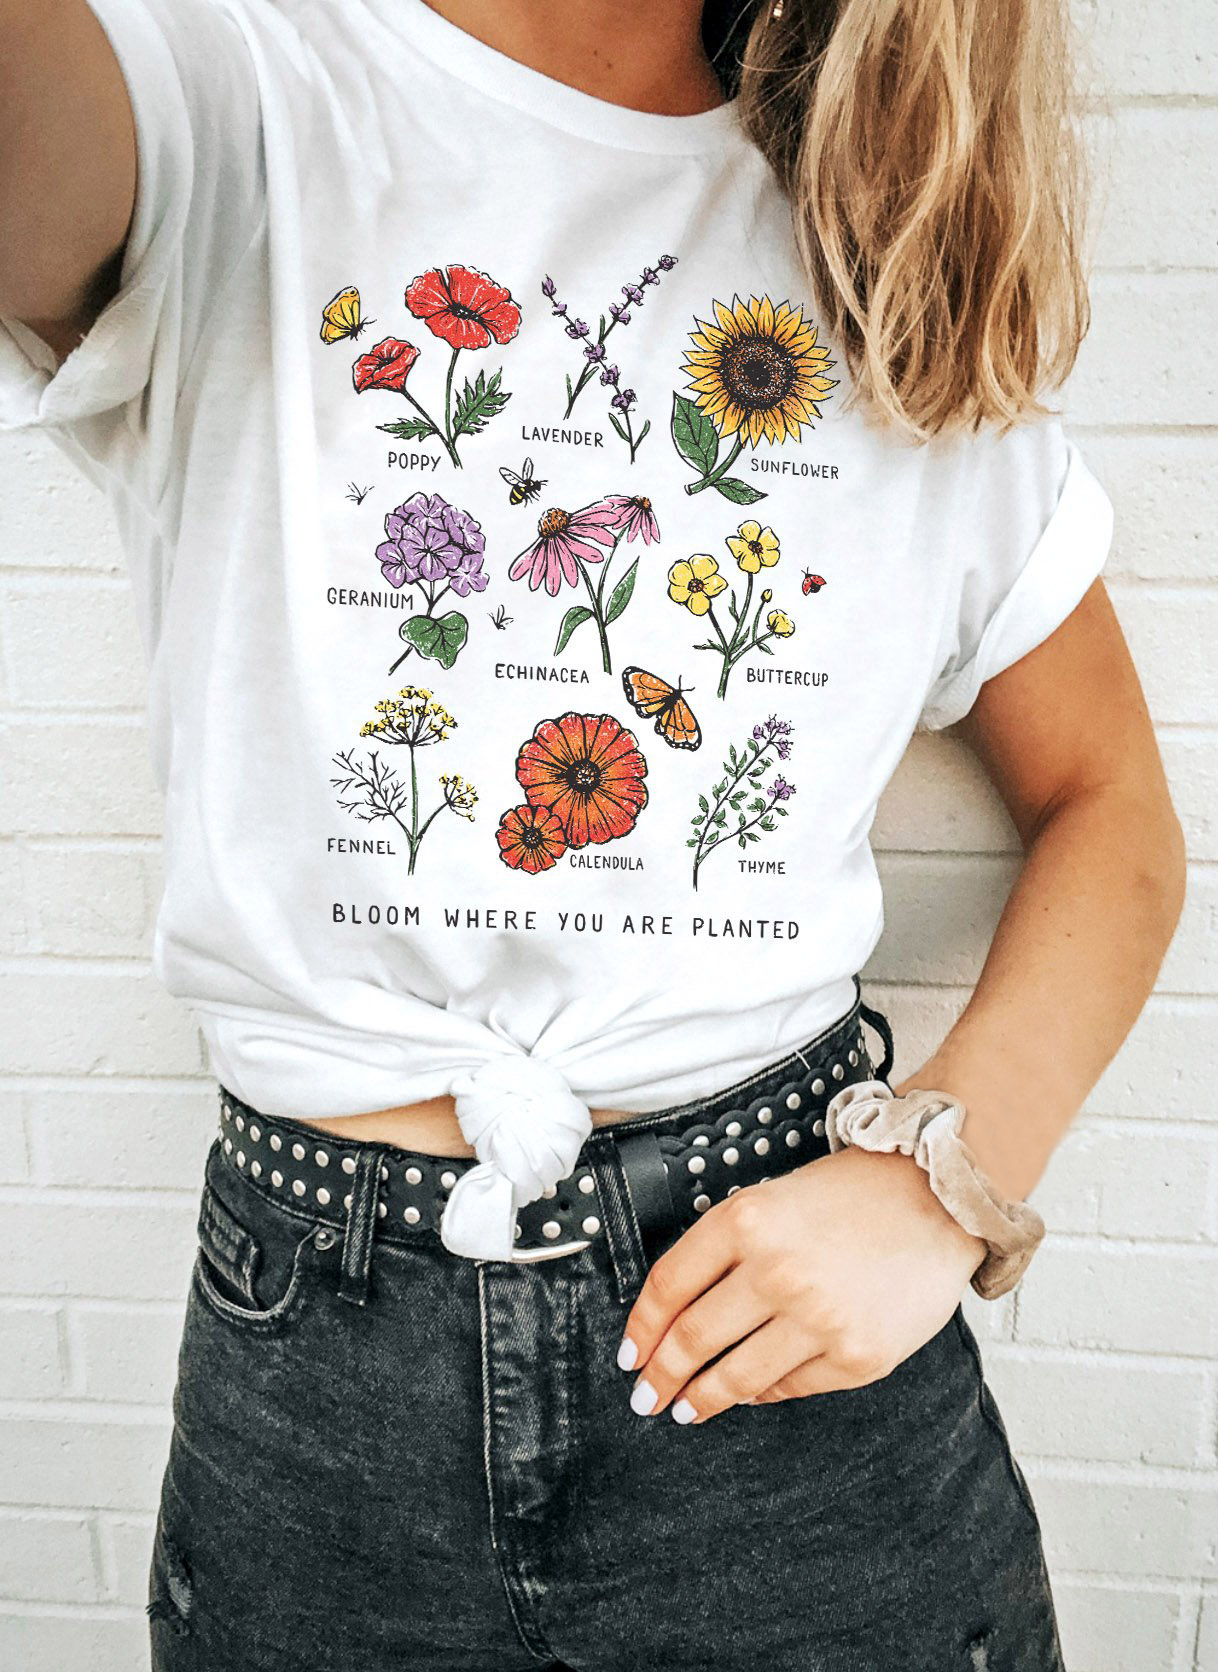 Bloom Where You Are Planted Women T Shirt Summer Sunflower Flower T Shirt Graphic Tee  Hipsters Grunge Top